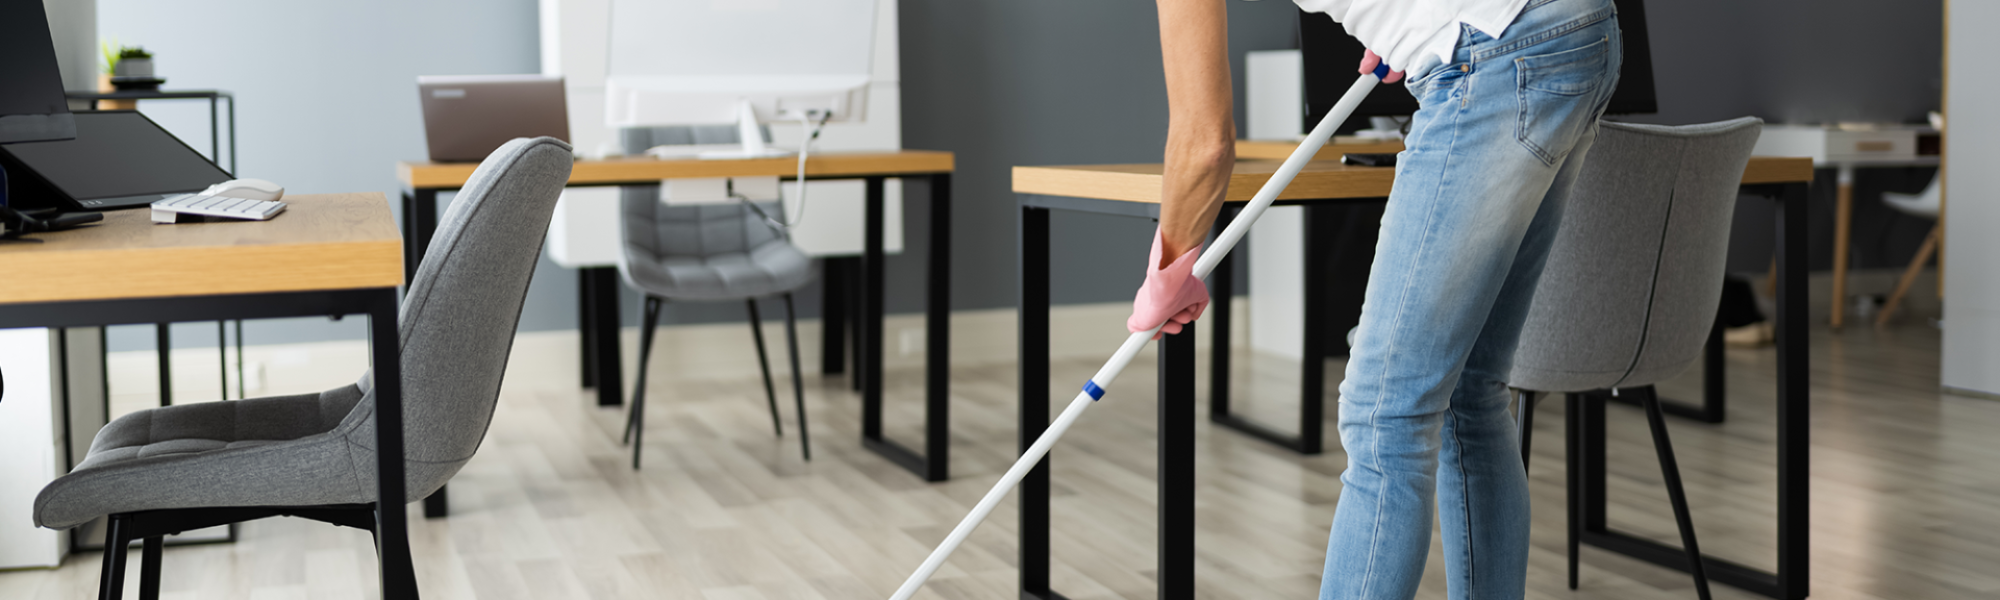 somerset cleaning